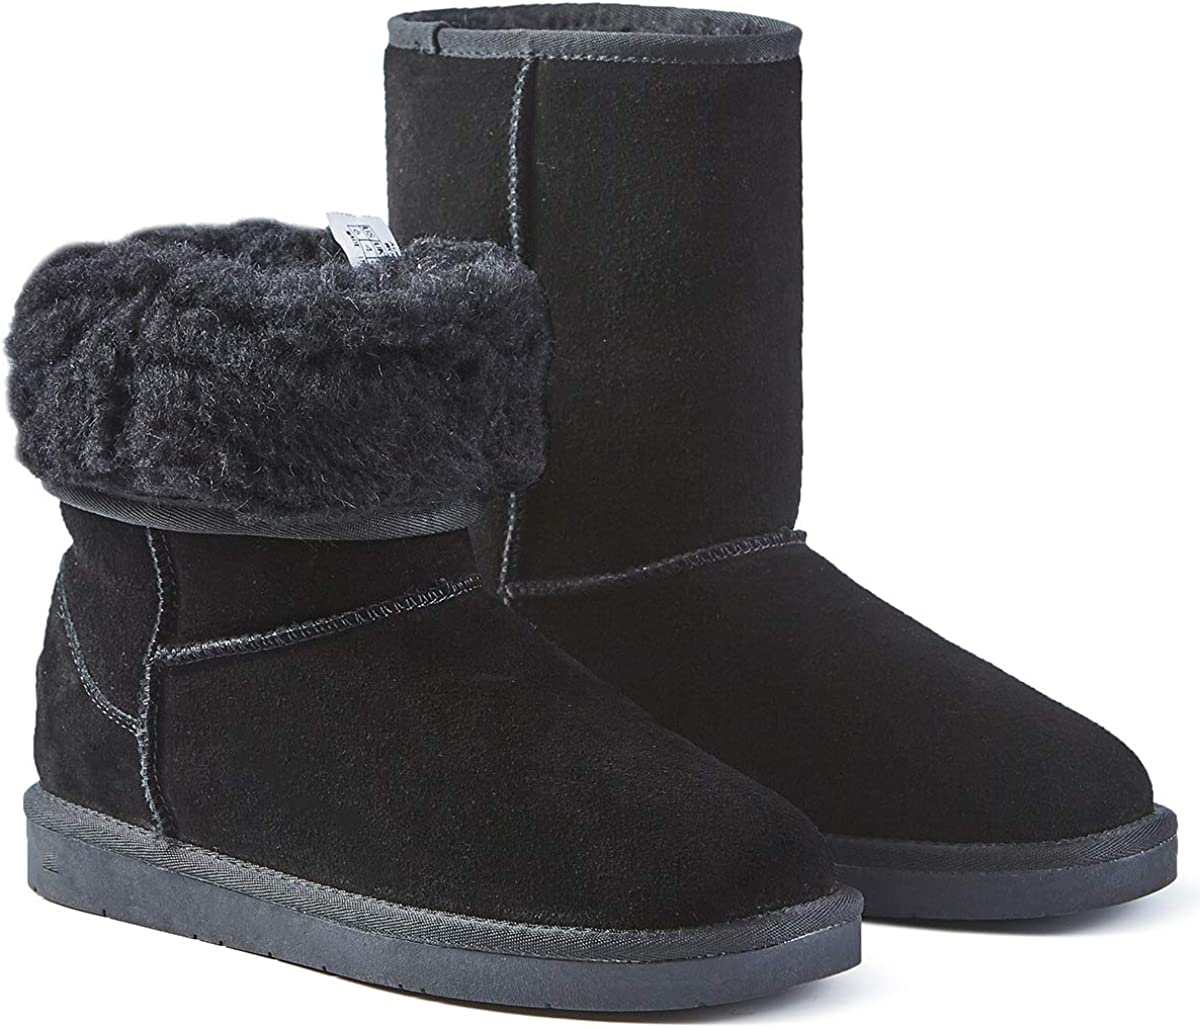 Women's Classic Snow Boots Fur Lined Ankle Bootie Warm Short Boots Winter Shoes